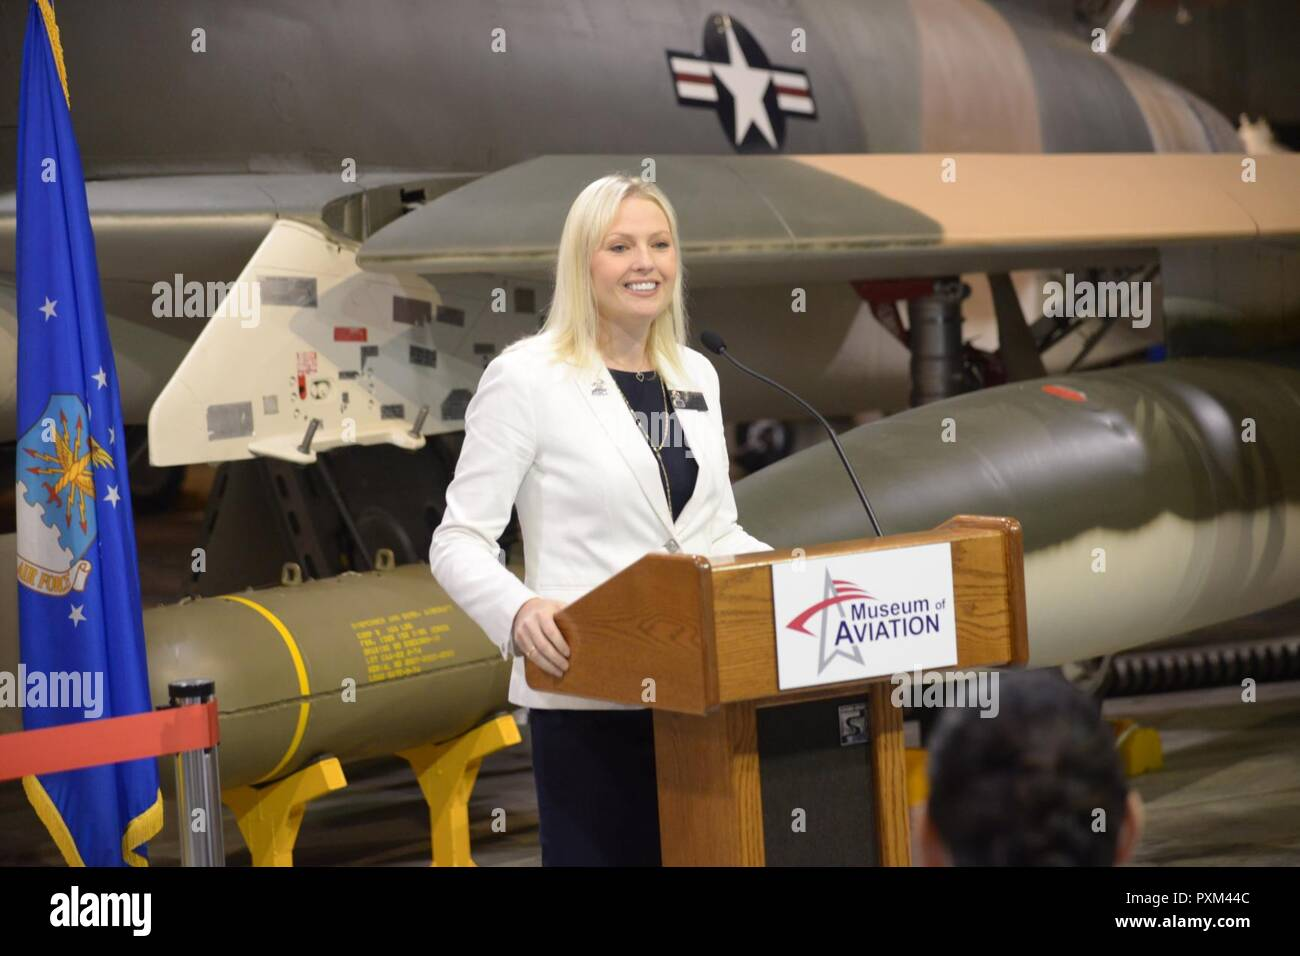 The Museum of Aviation hosted a dedication ceremony for the museum's